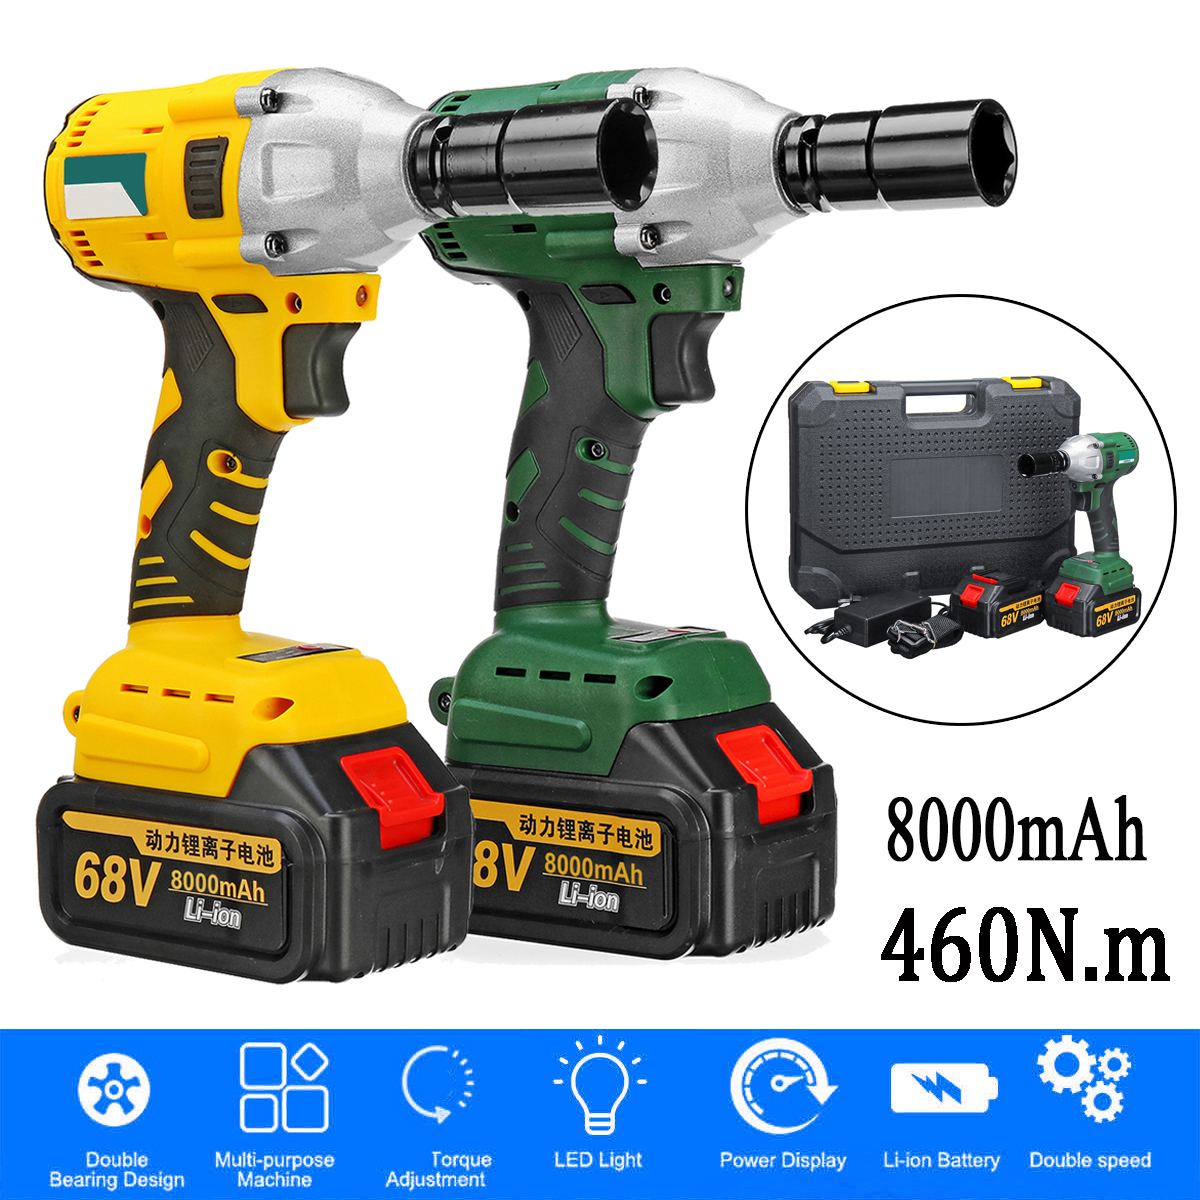 68V 8000mAh 460N.m Electric Brushless Cordless Impact Wrench With 2 Batteries 1 Charger Hand Drill Installation Power Tools68V 8000mAh 460N.m Electric Brushless Cordless Impact Wrench With 2 Batteries 1 Charger Hand Drill Installation Power Tools